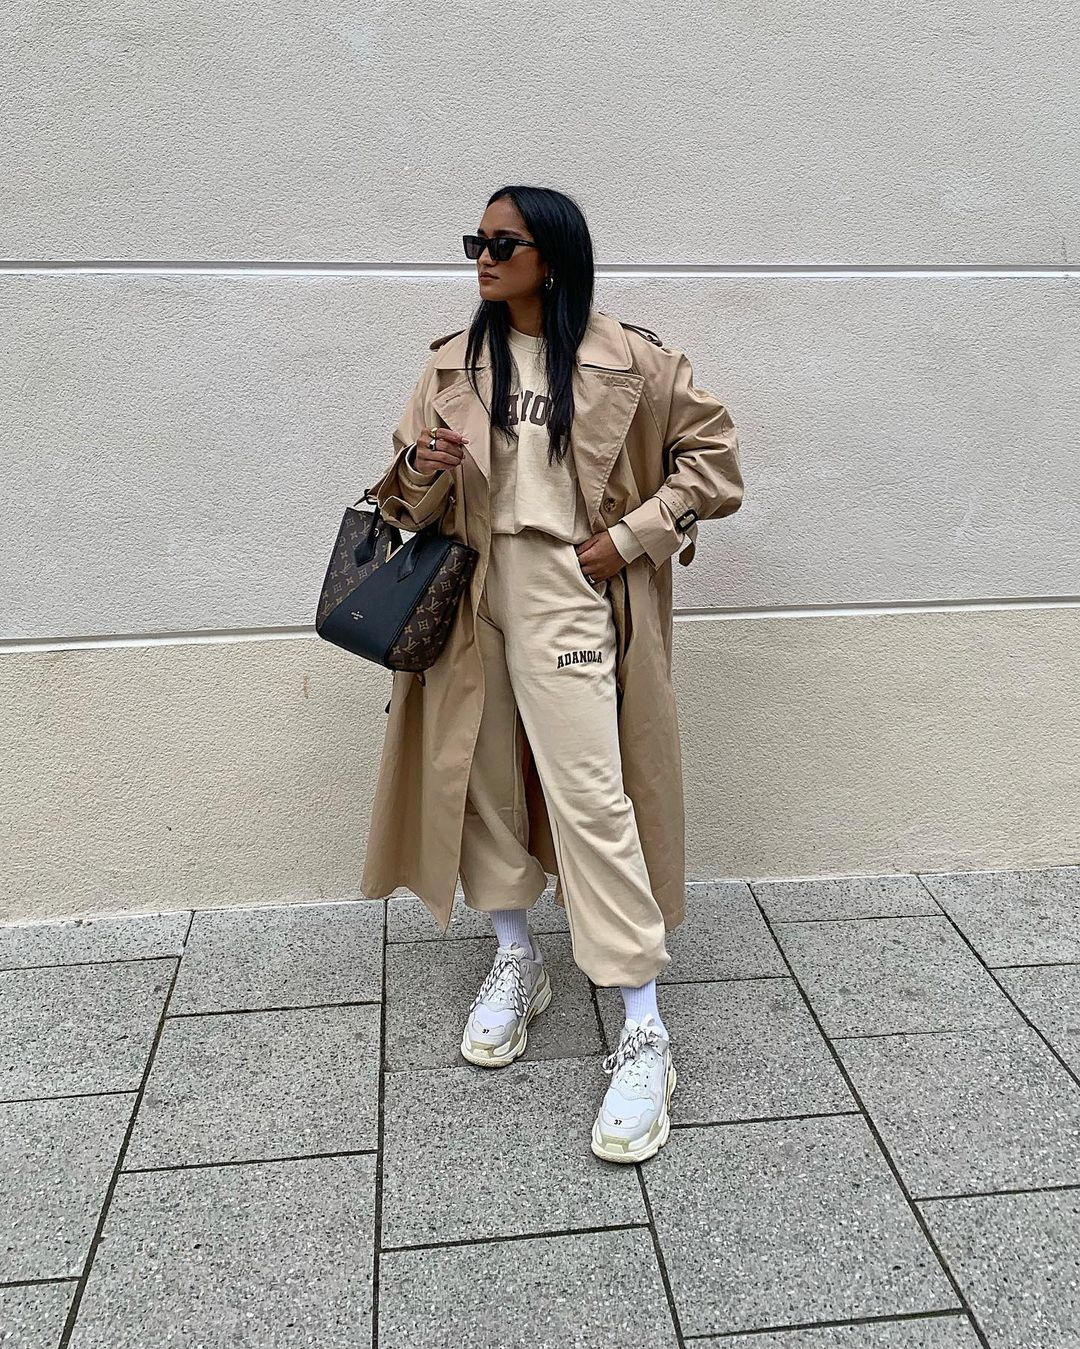 wardrobe-nyc-trench-coat-div-ravindran-instagram